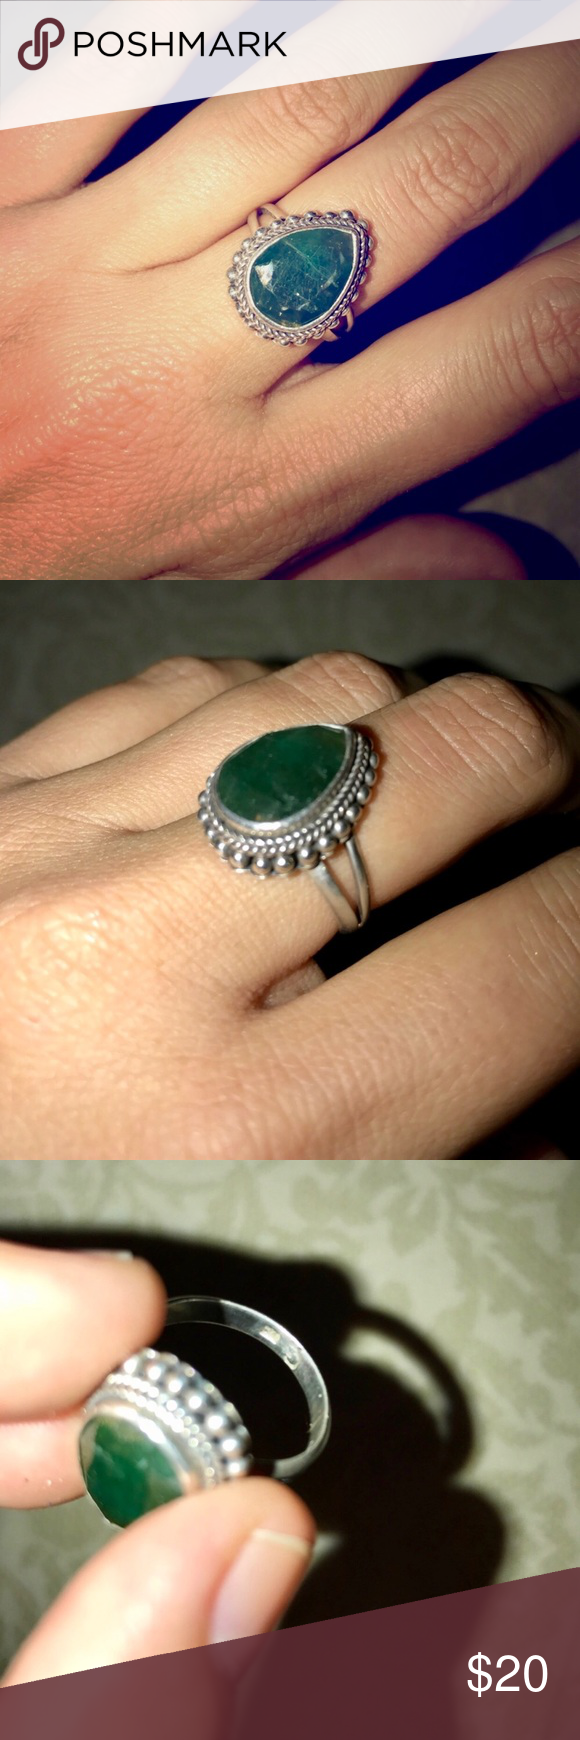 Green stone ring Love this ring! Dark green gemstone, size 7. Sterling silver. .925 printed on the inside of the band. Comfortable to wear, not bulky.  ✨Save on bundles! ✨ Jewelry Rings